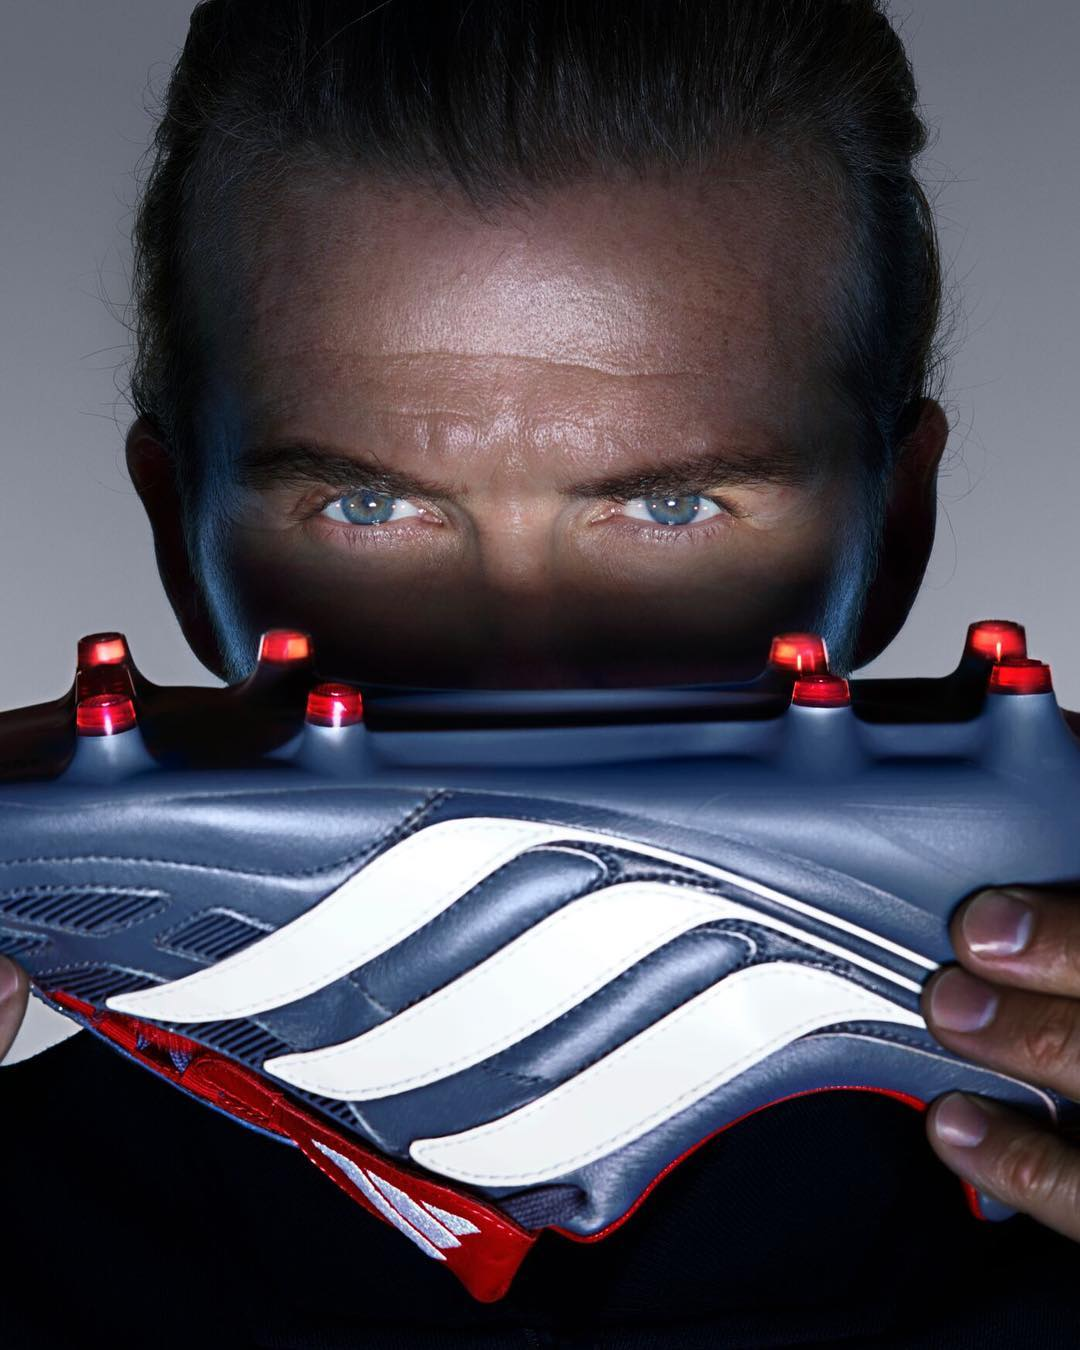 David Beckham Instagram: An icon of the game. Many memories in these boots. The Predator Precision, reima...